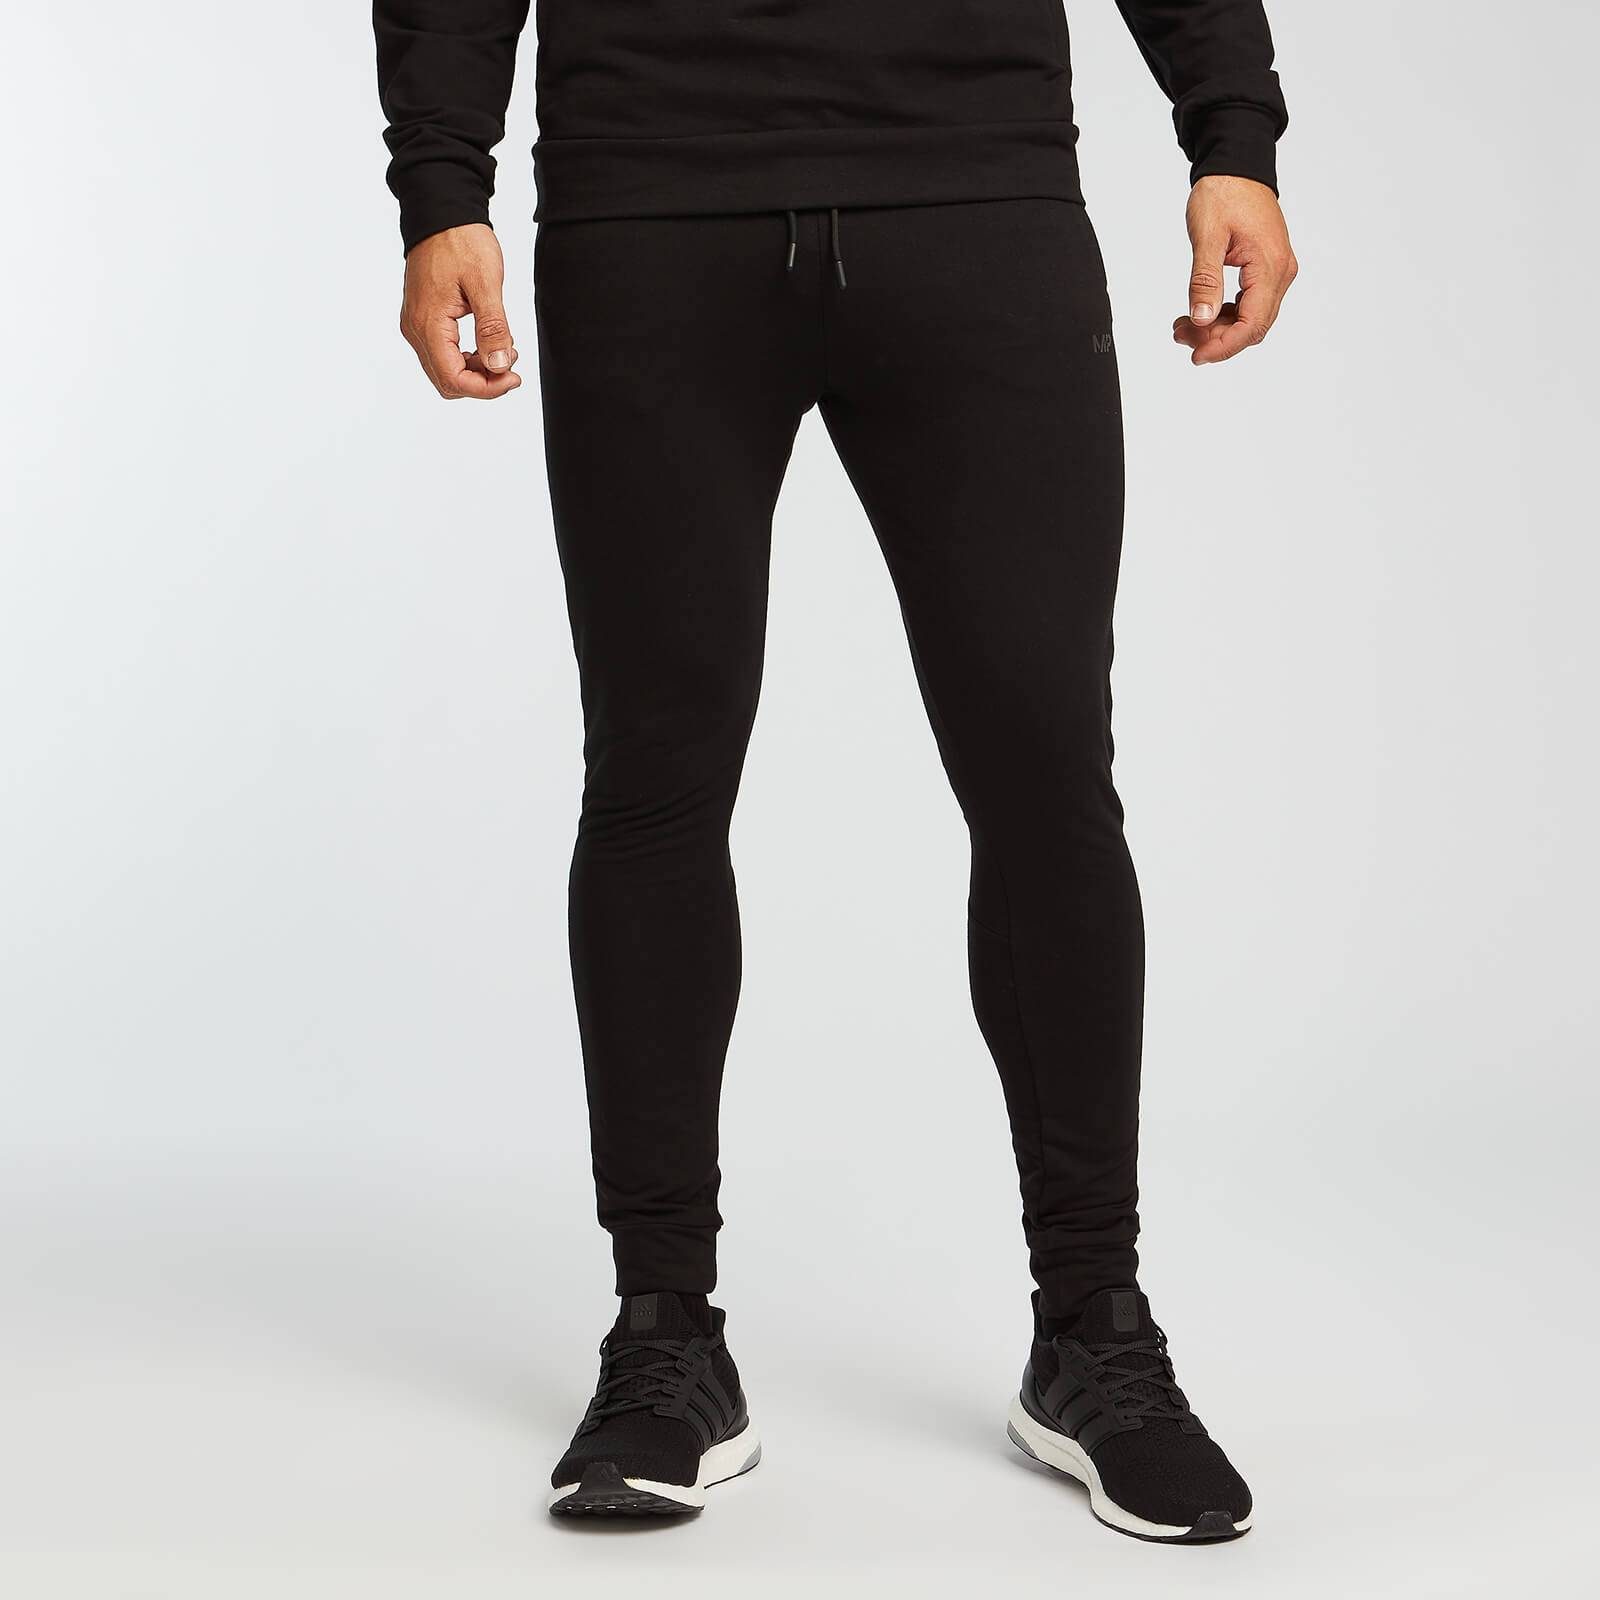 Myprotein Pantaloni da jogging slim fit MP Form da uomo - Neri - L